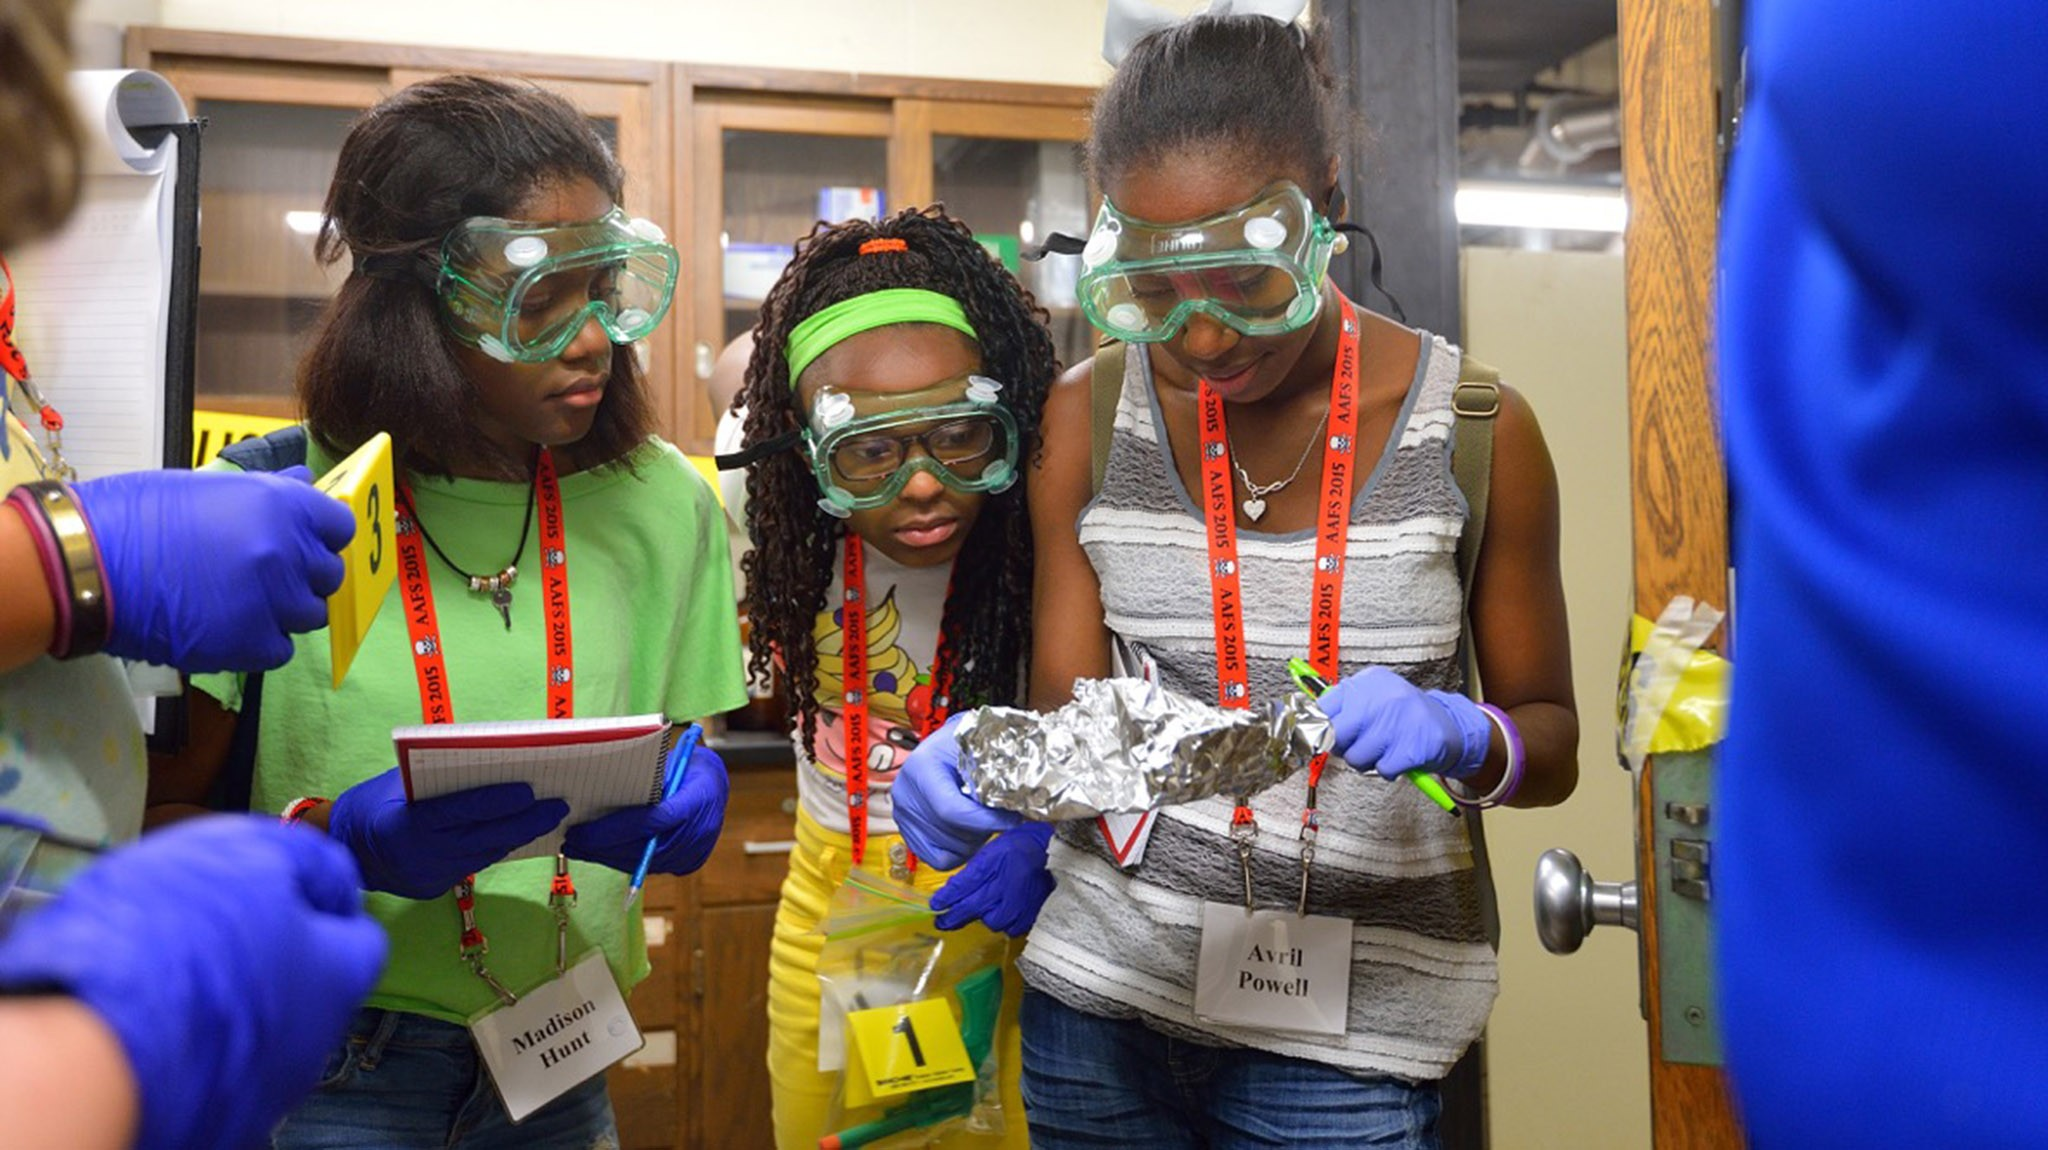 Csi Gets Real At Um Forensics Camp Ole Miss News